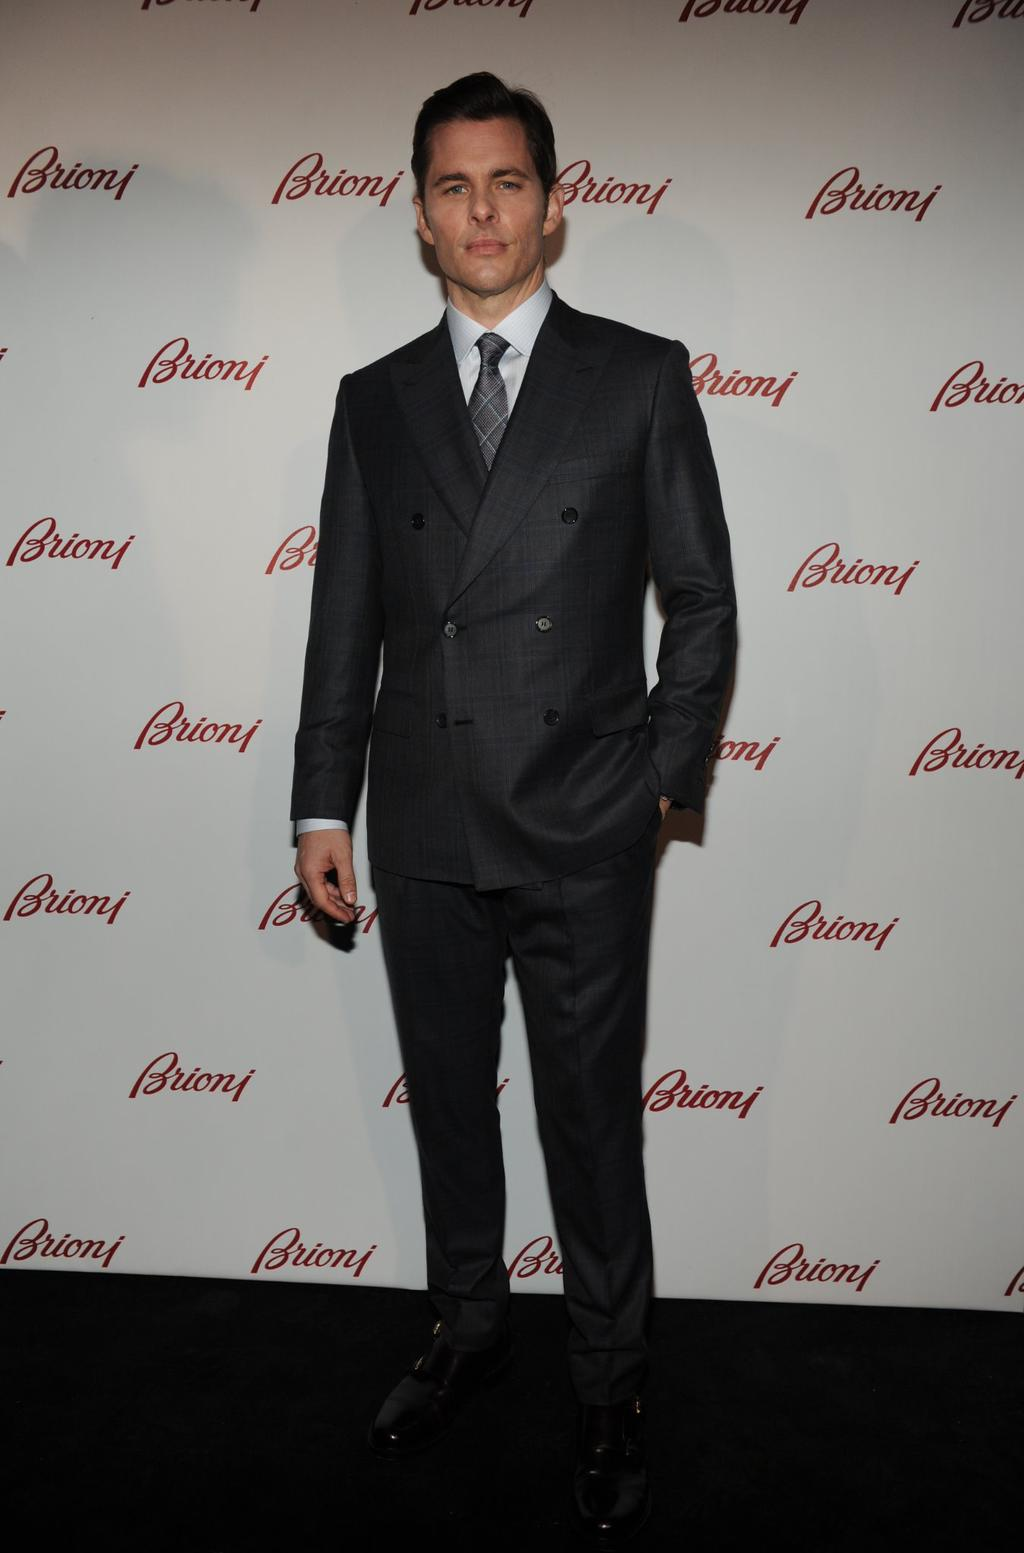 ames-marsden-brioni-brioni-milan-menswear-fashion-week-dinner-party/